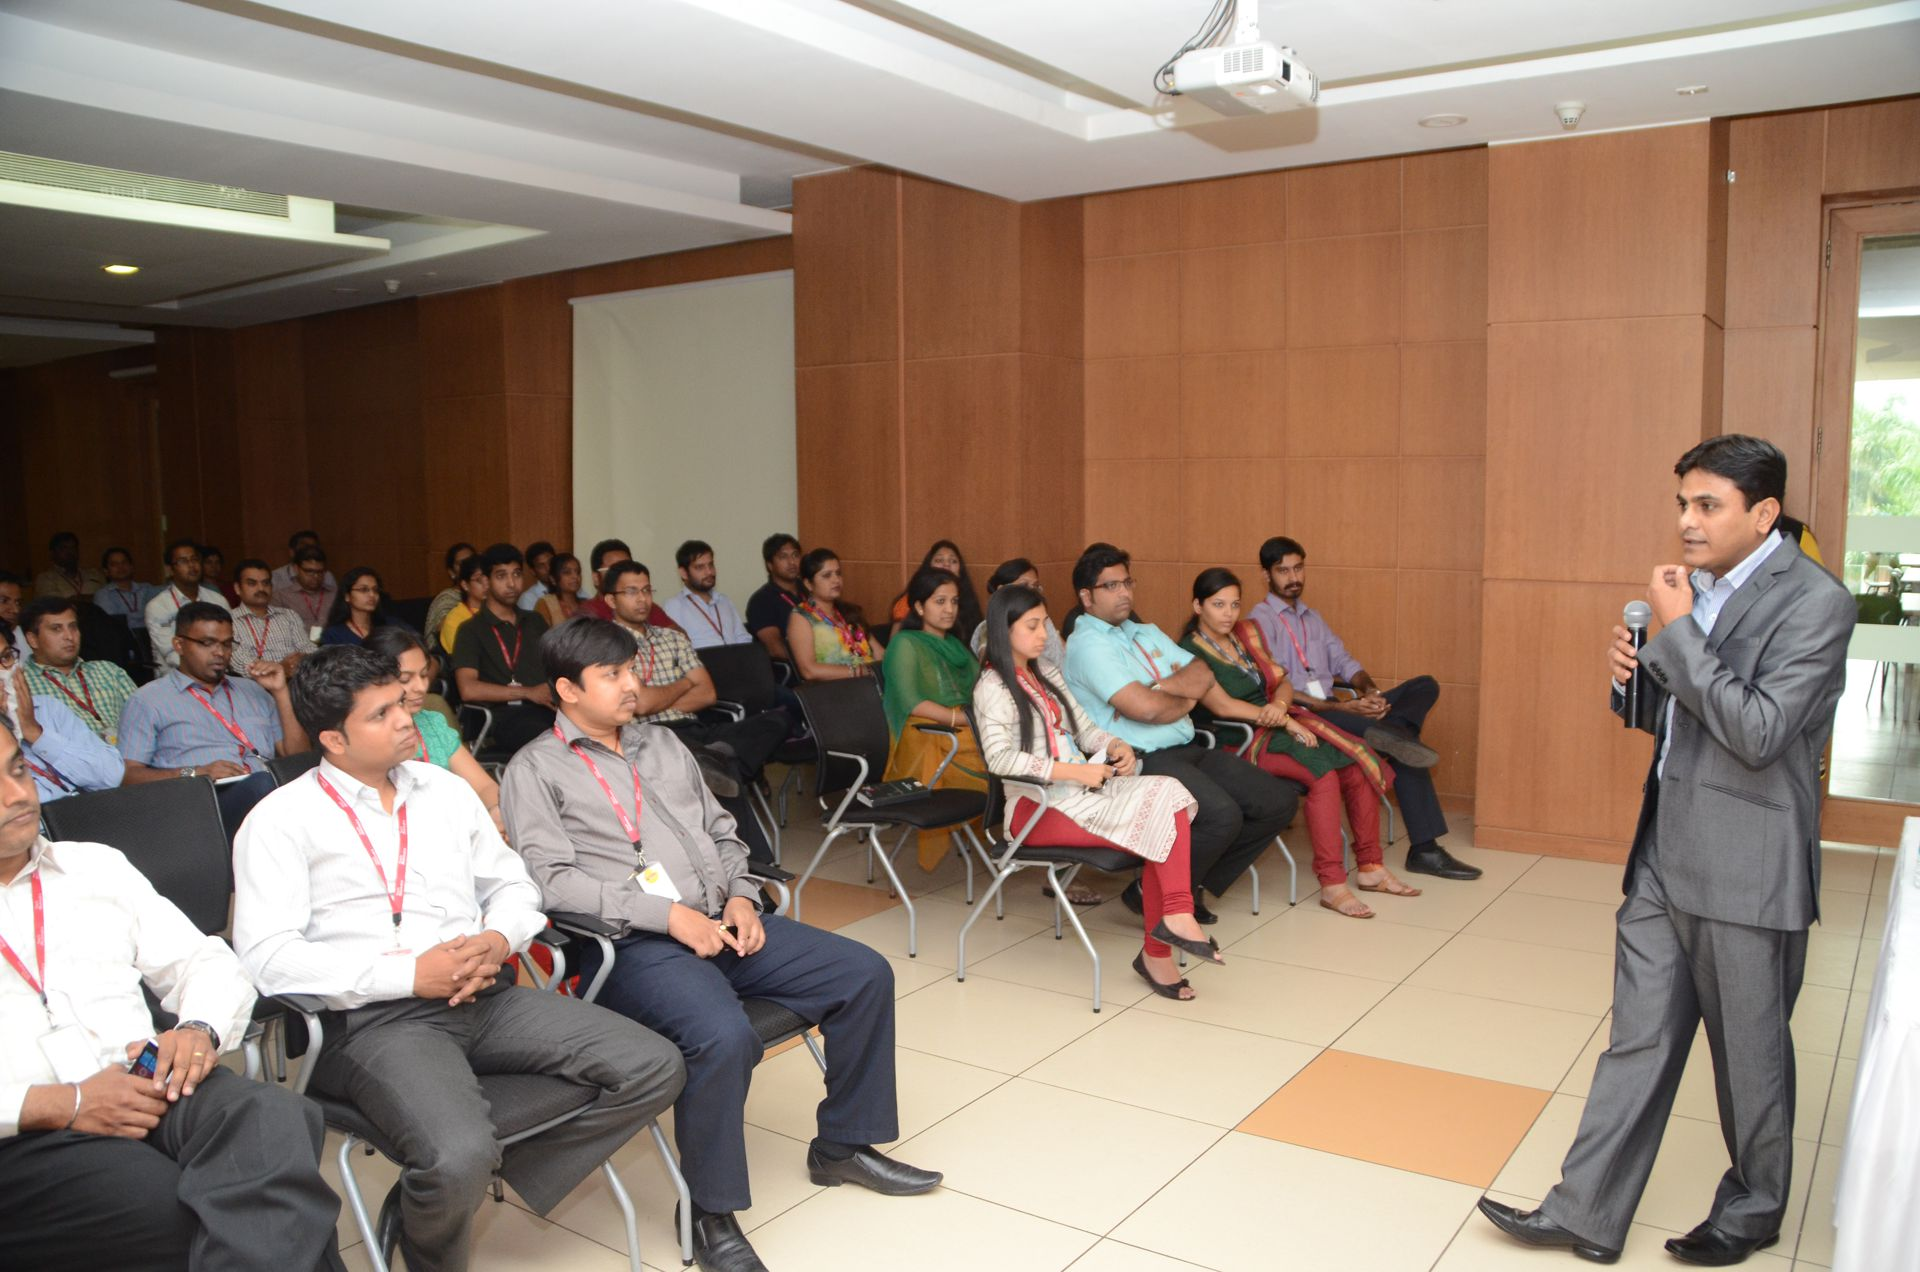 Sandip Arsude Graphology Class at Tech Mahindra